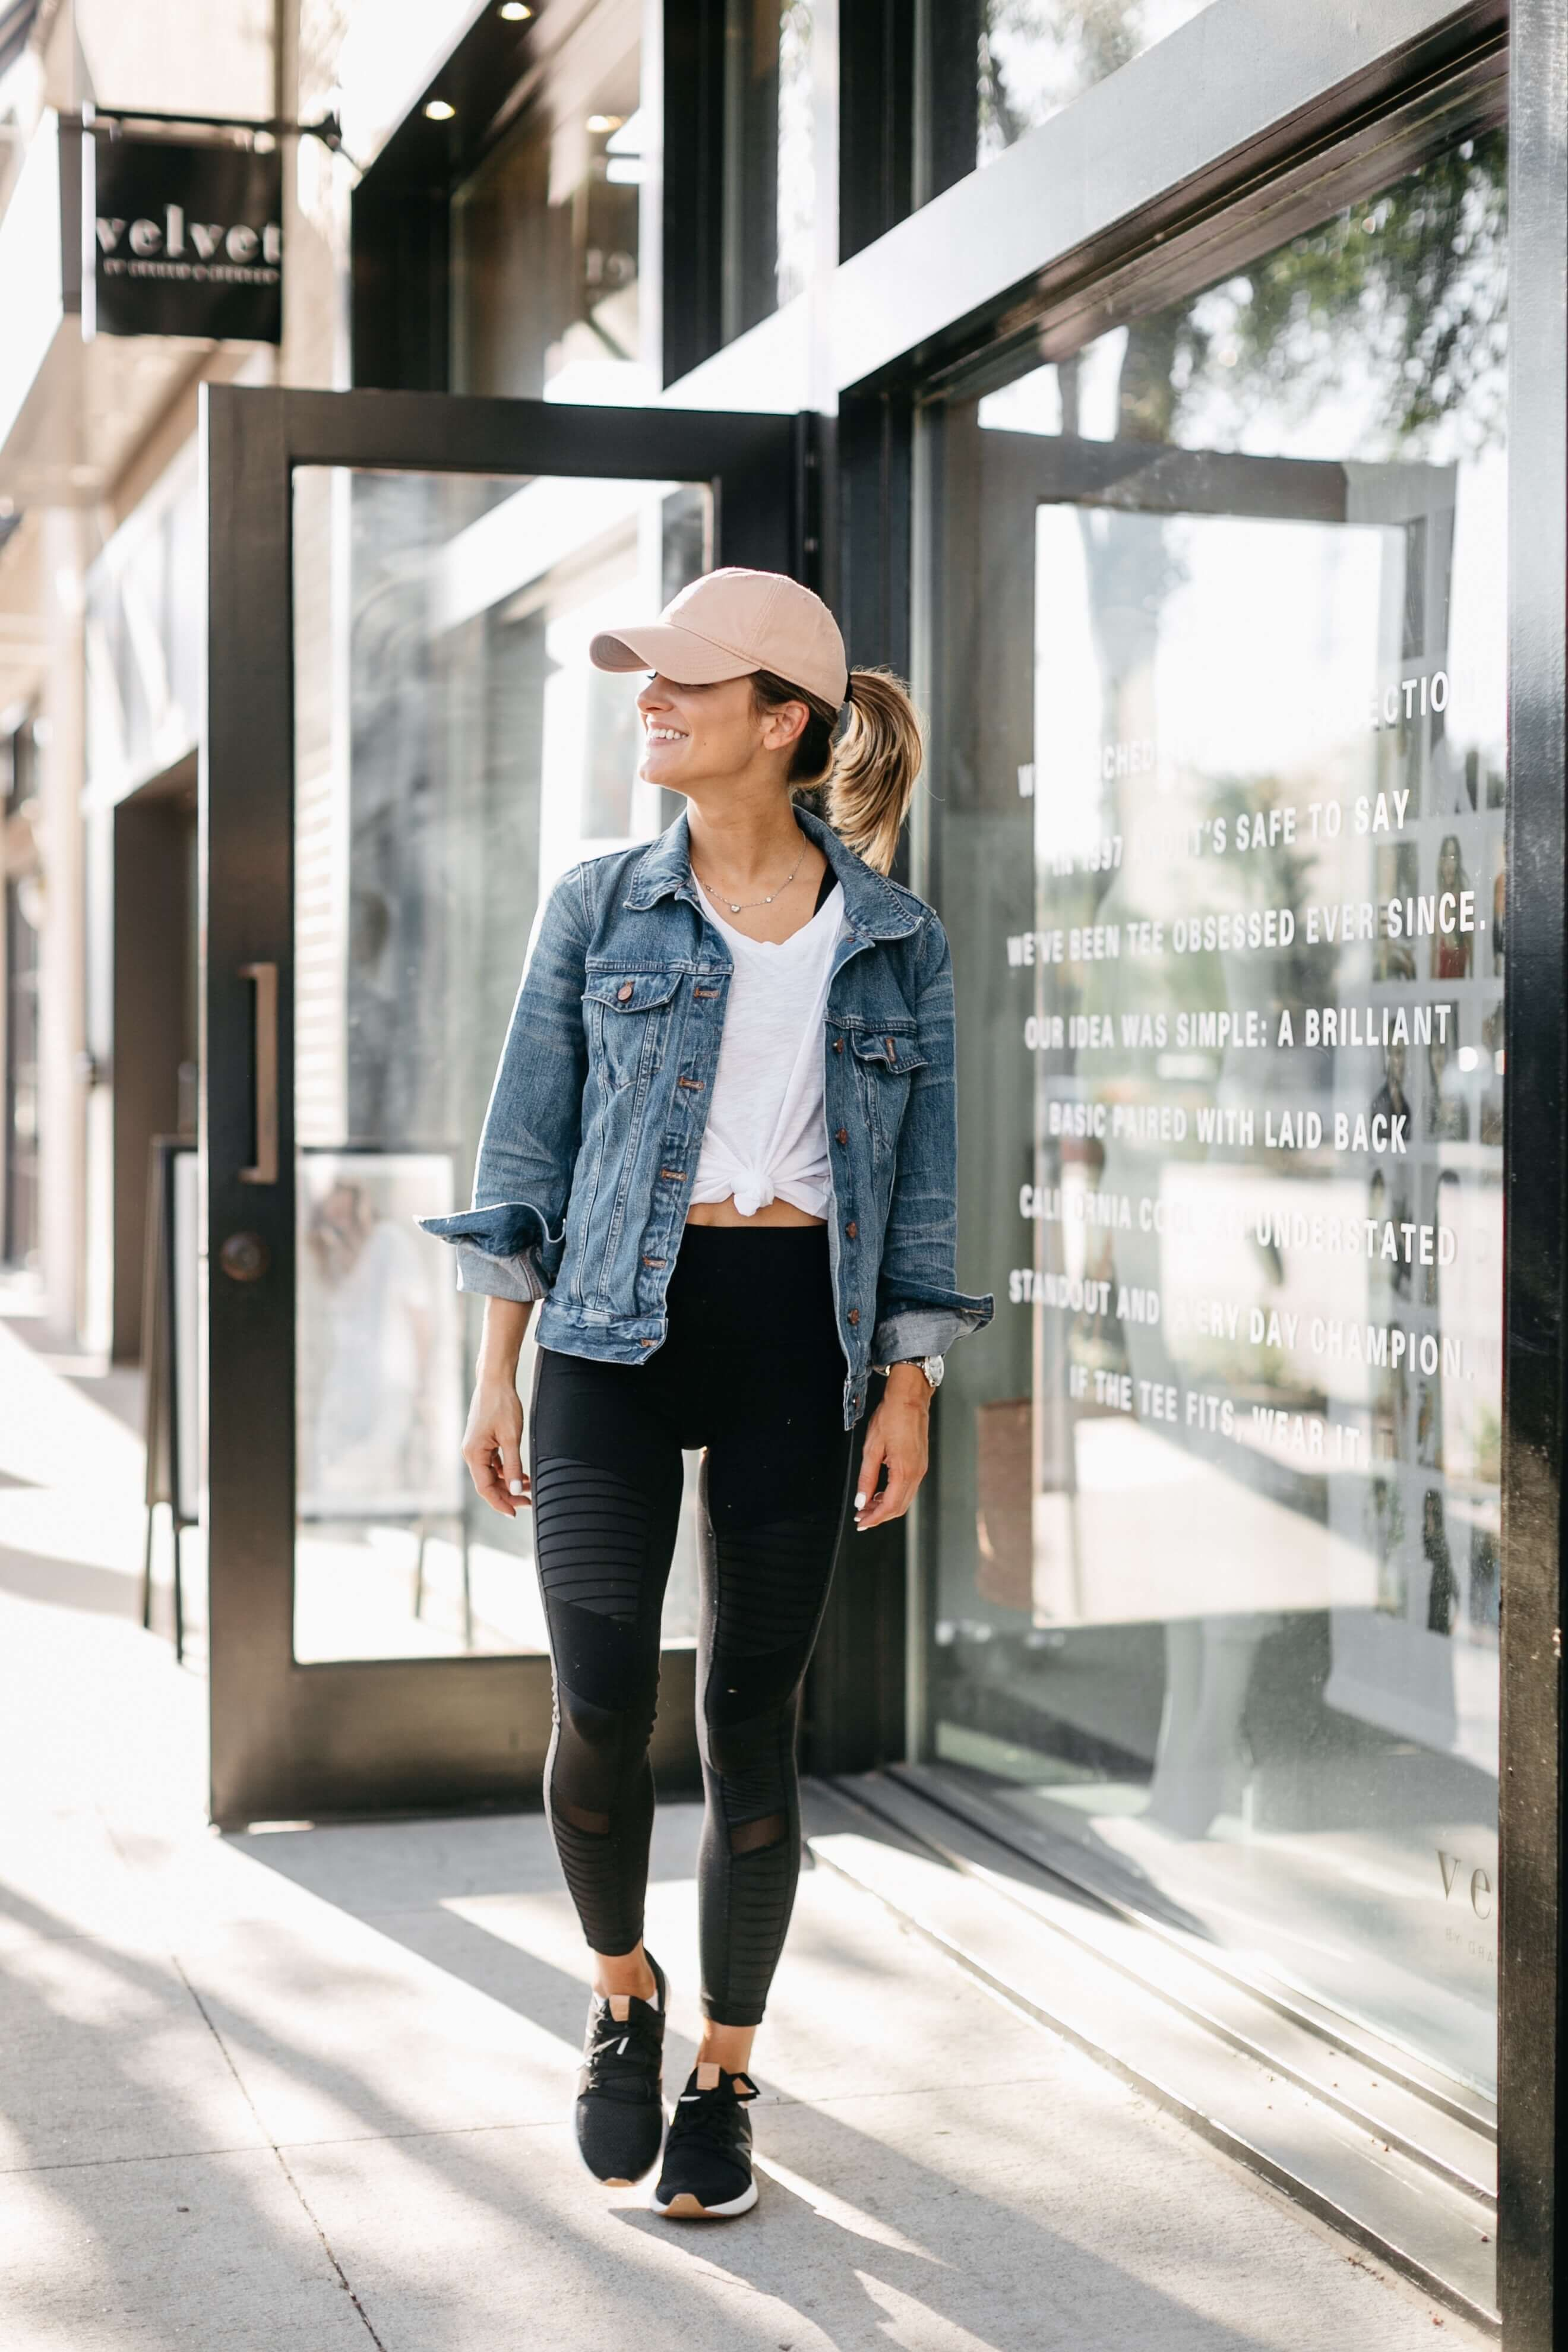 Baseball cap outfit ideas, Casual wear